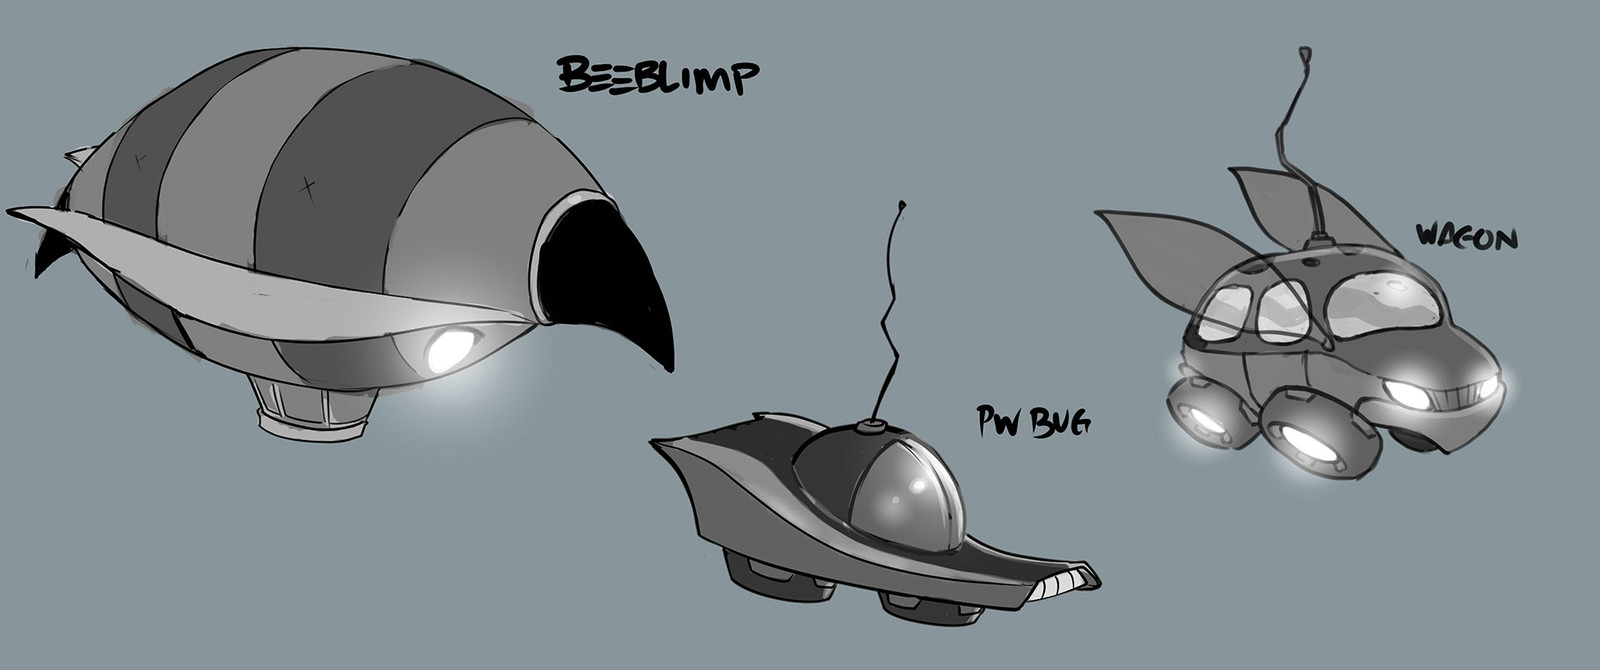 Vehicle concepts for set dressing.